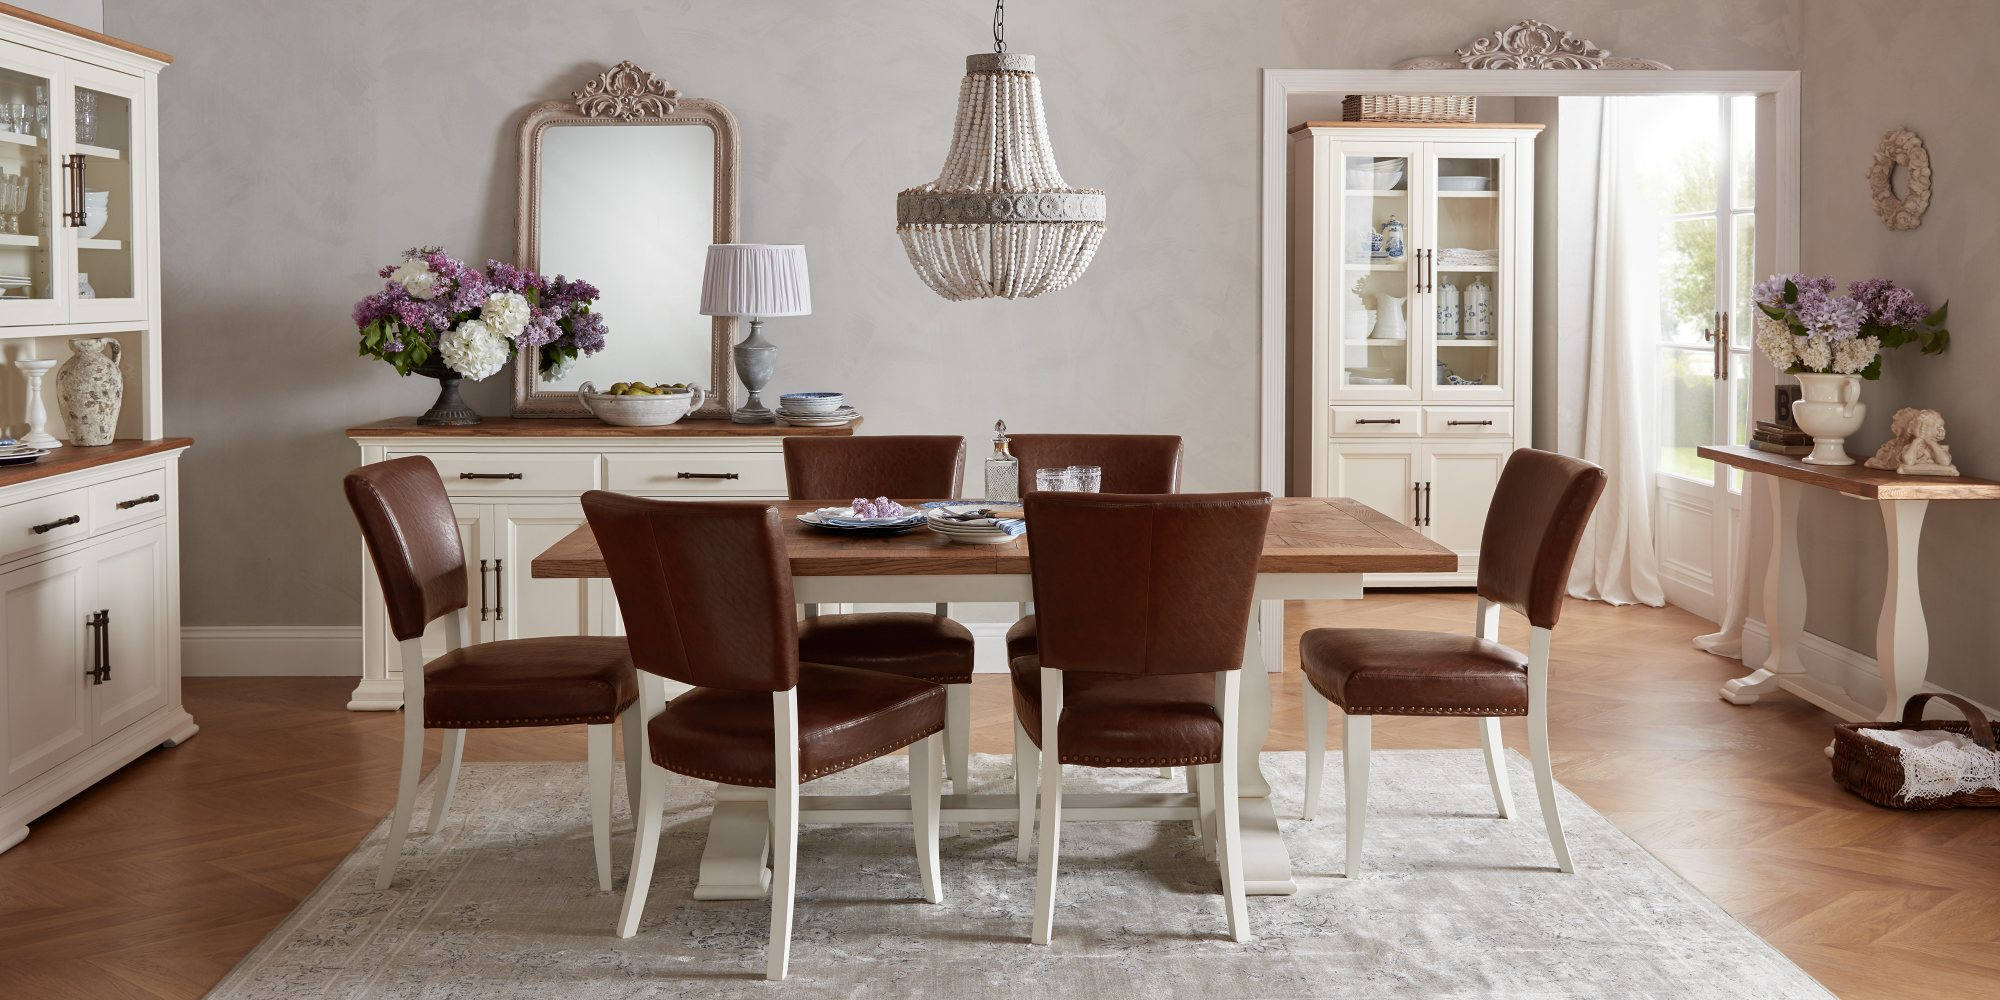 HIGHLAND DINING SET - CLOSED L190cm EXTENDED TO L240cm